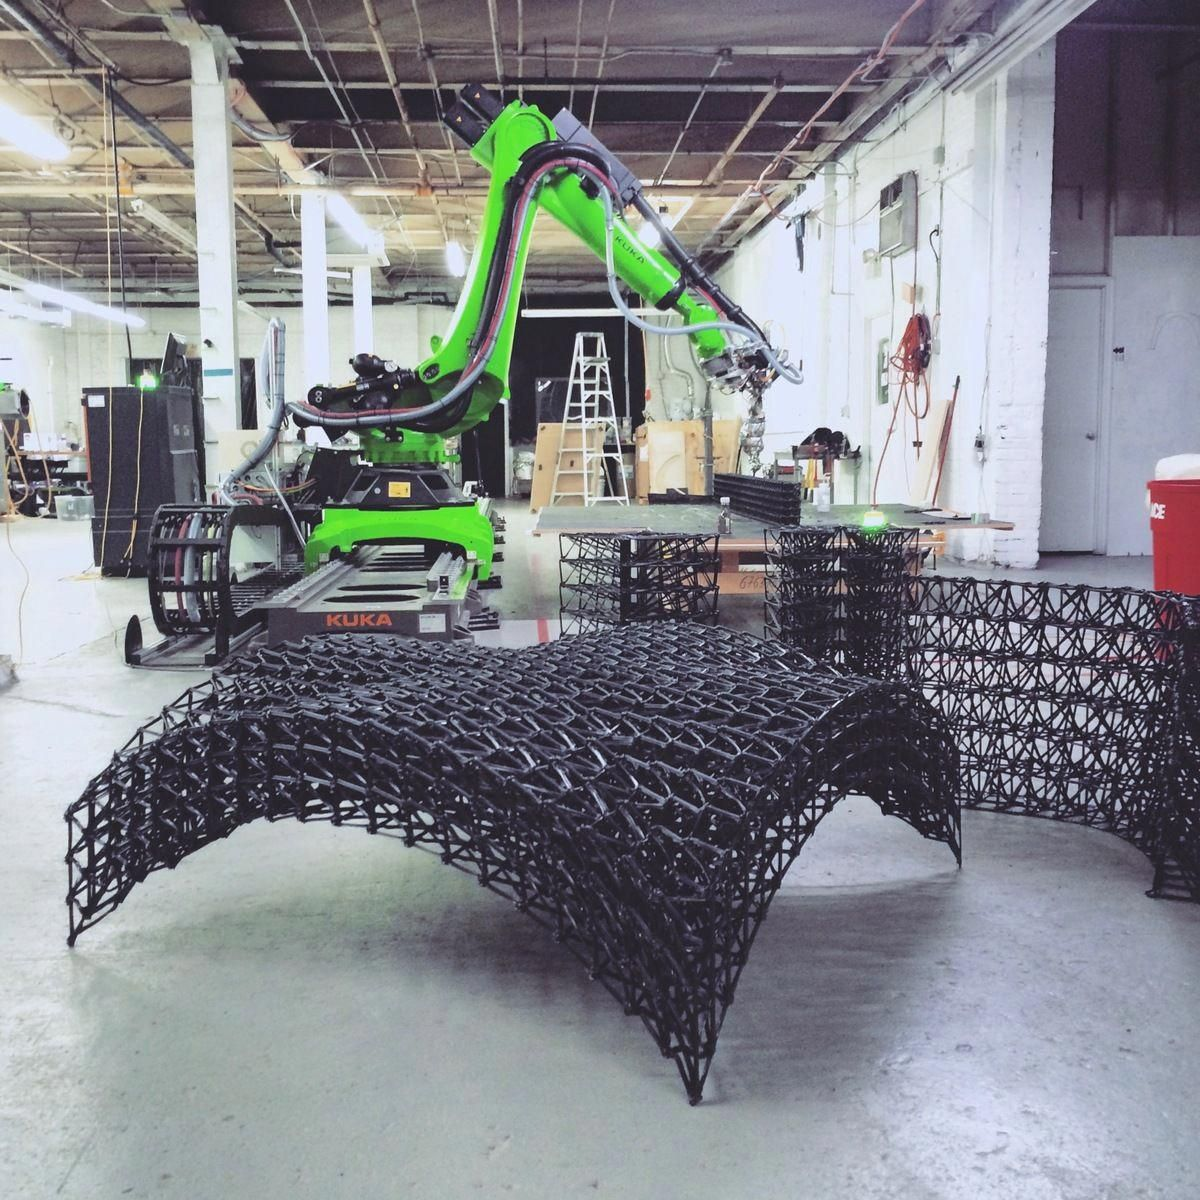 KUKA Robot Used For Large-scale 3D Printing. Image